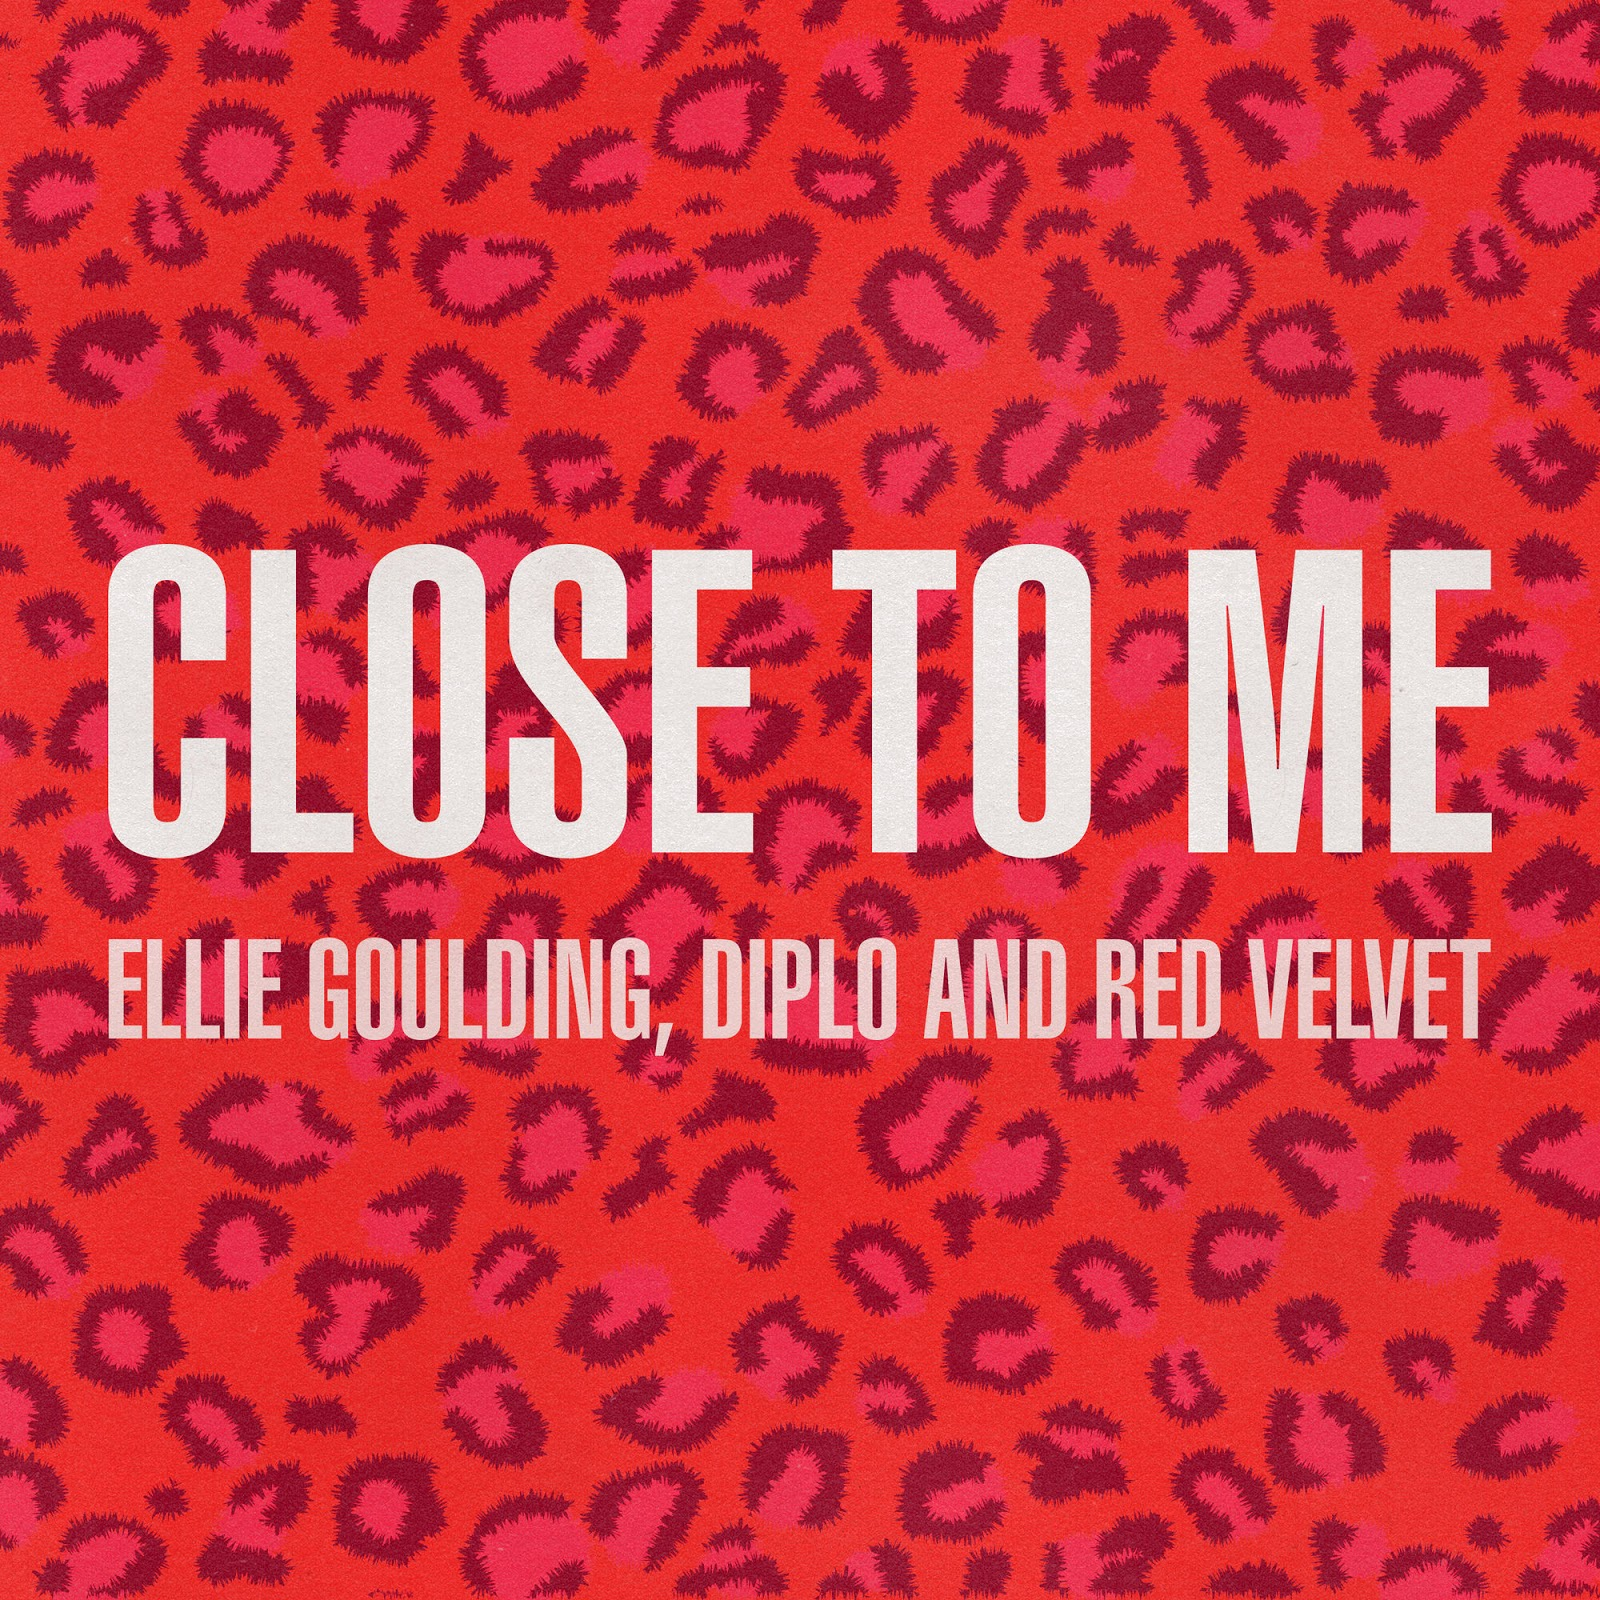 Ellie Goulding, Diplo & Red Velvet – Close to Me (Red Velvet Remix) – Single (ITUNES PLUS AAC M4A)